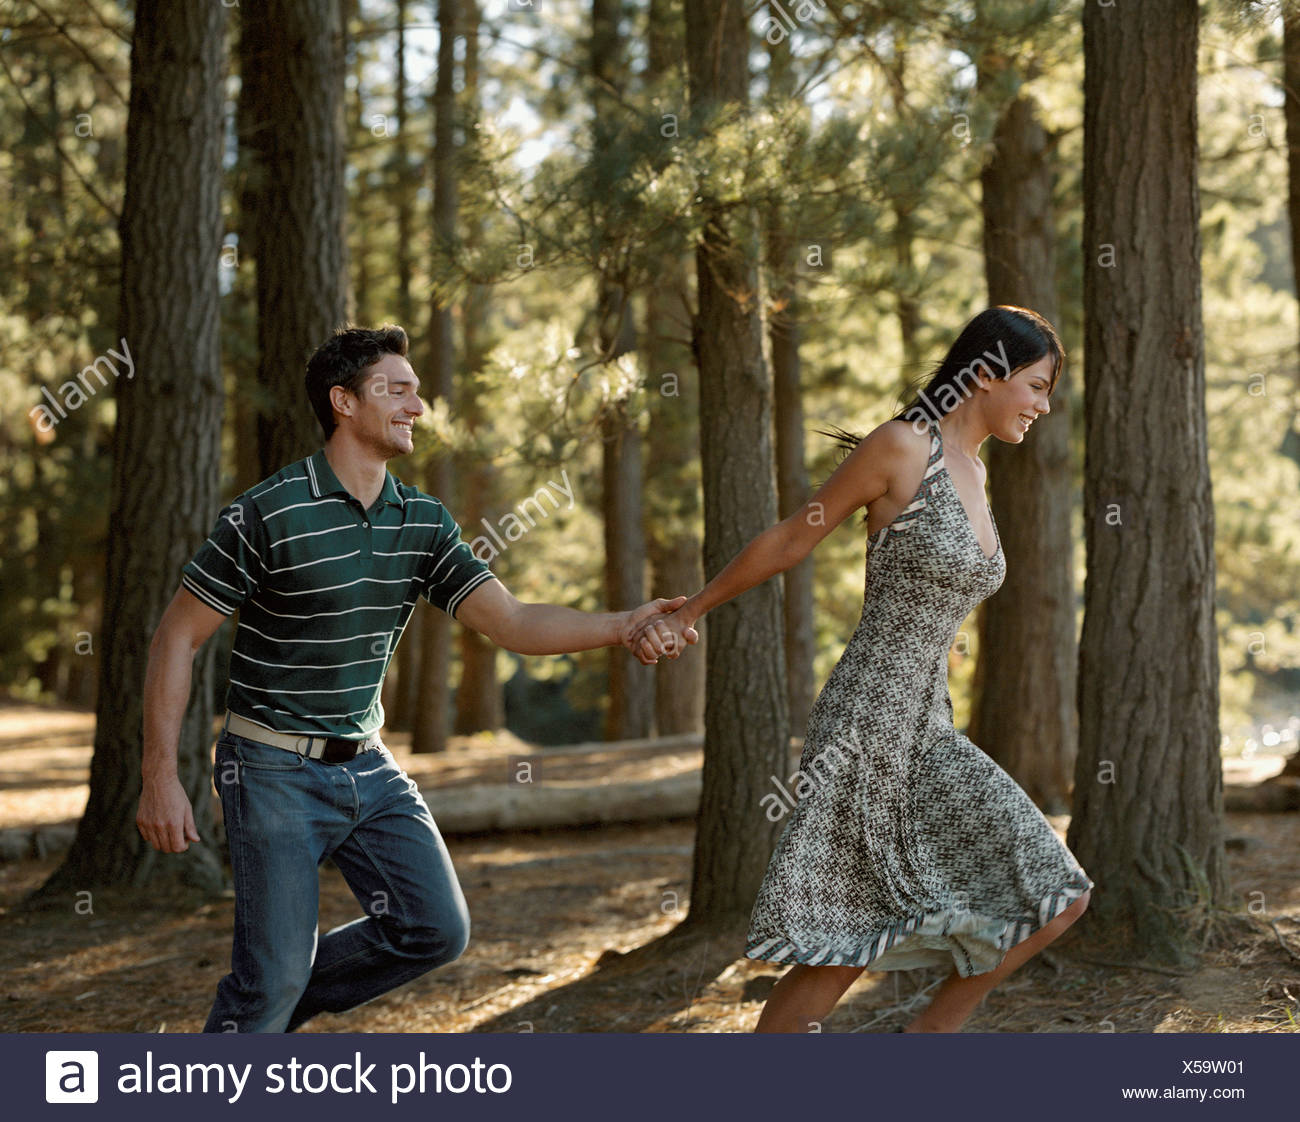 A couple running through the woods - Stock Image